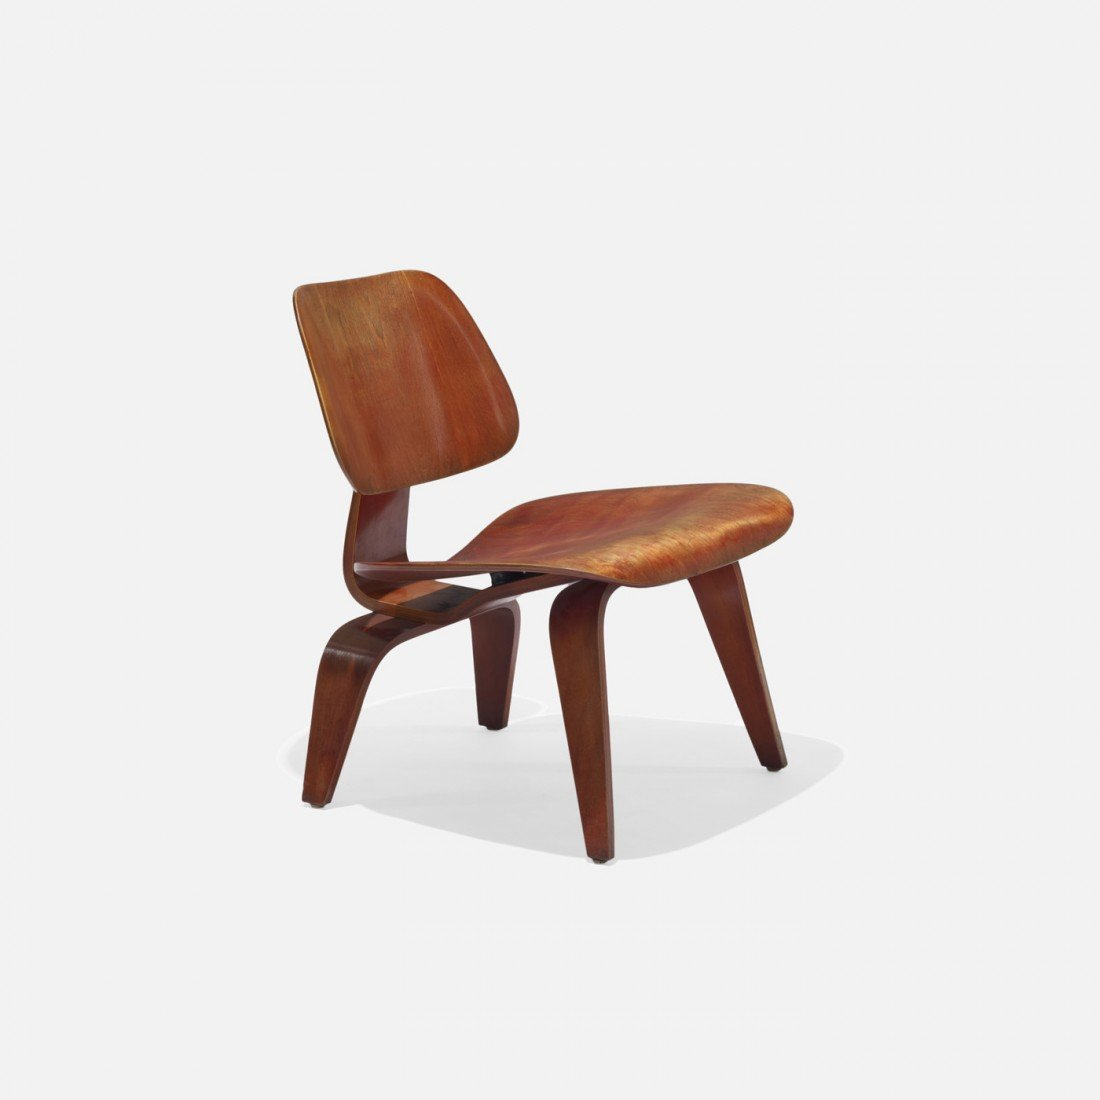 116: Charles and Ray Eames LCW